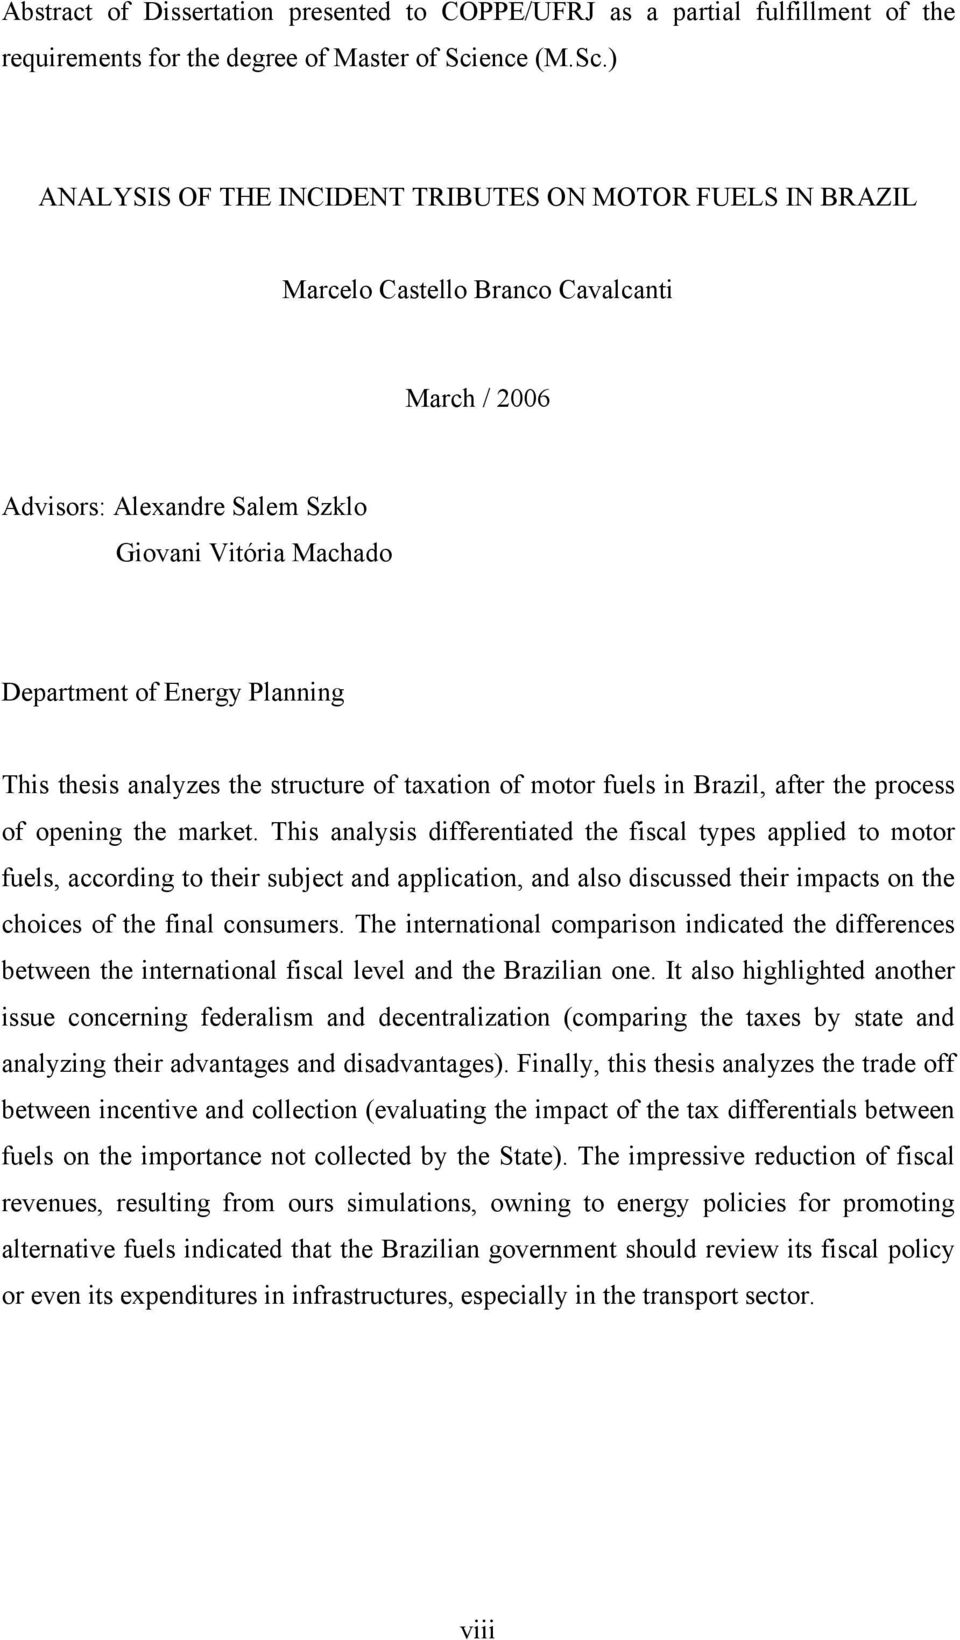 ) ANALYSIS OF THE INCIDENT TRIBUTES ON MOTOR FUELS IN BRAZIL Marcelo Castello Branco Cavalcanti March / 2006 Advisors: Alexandre Salem Szklo Giovani Vitória Machado Department of Energy Planning This